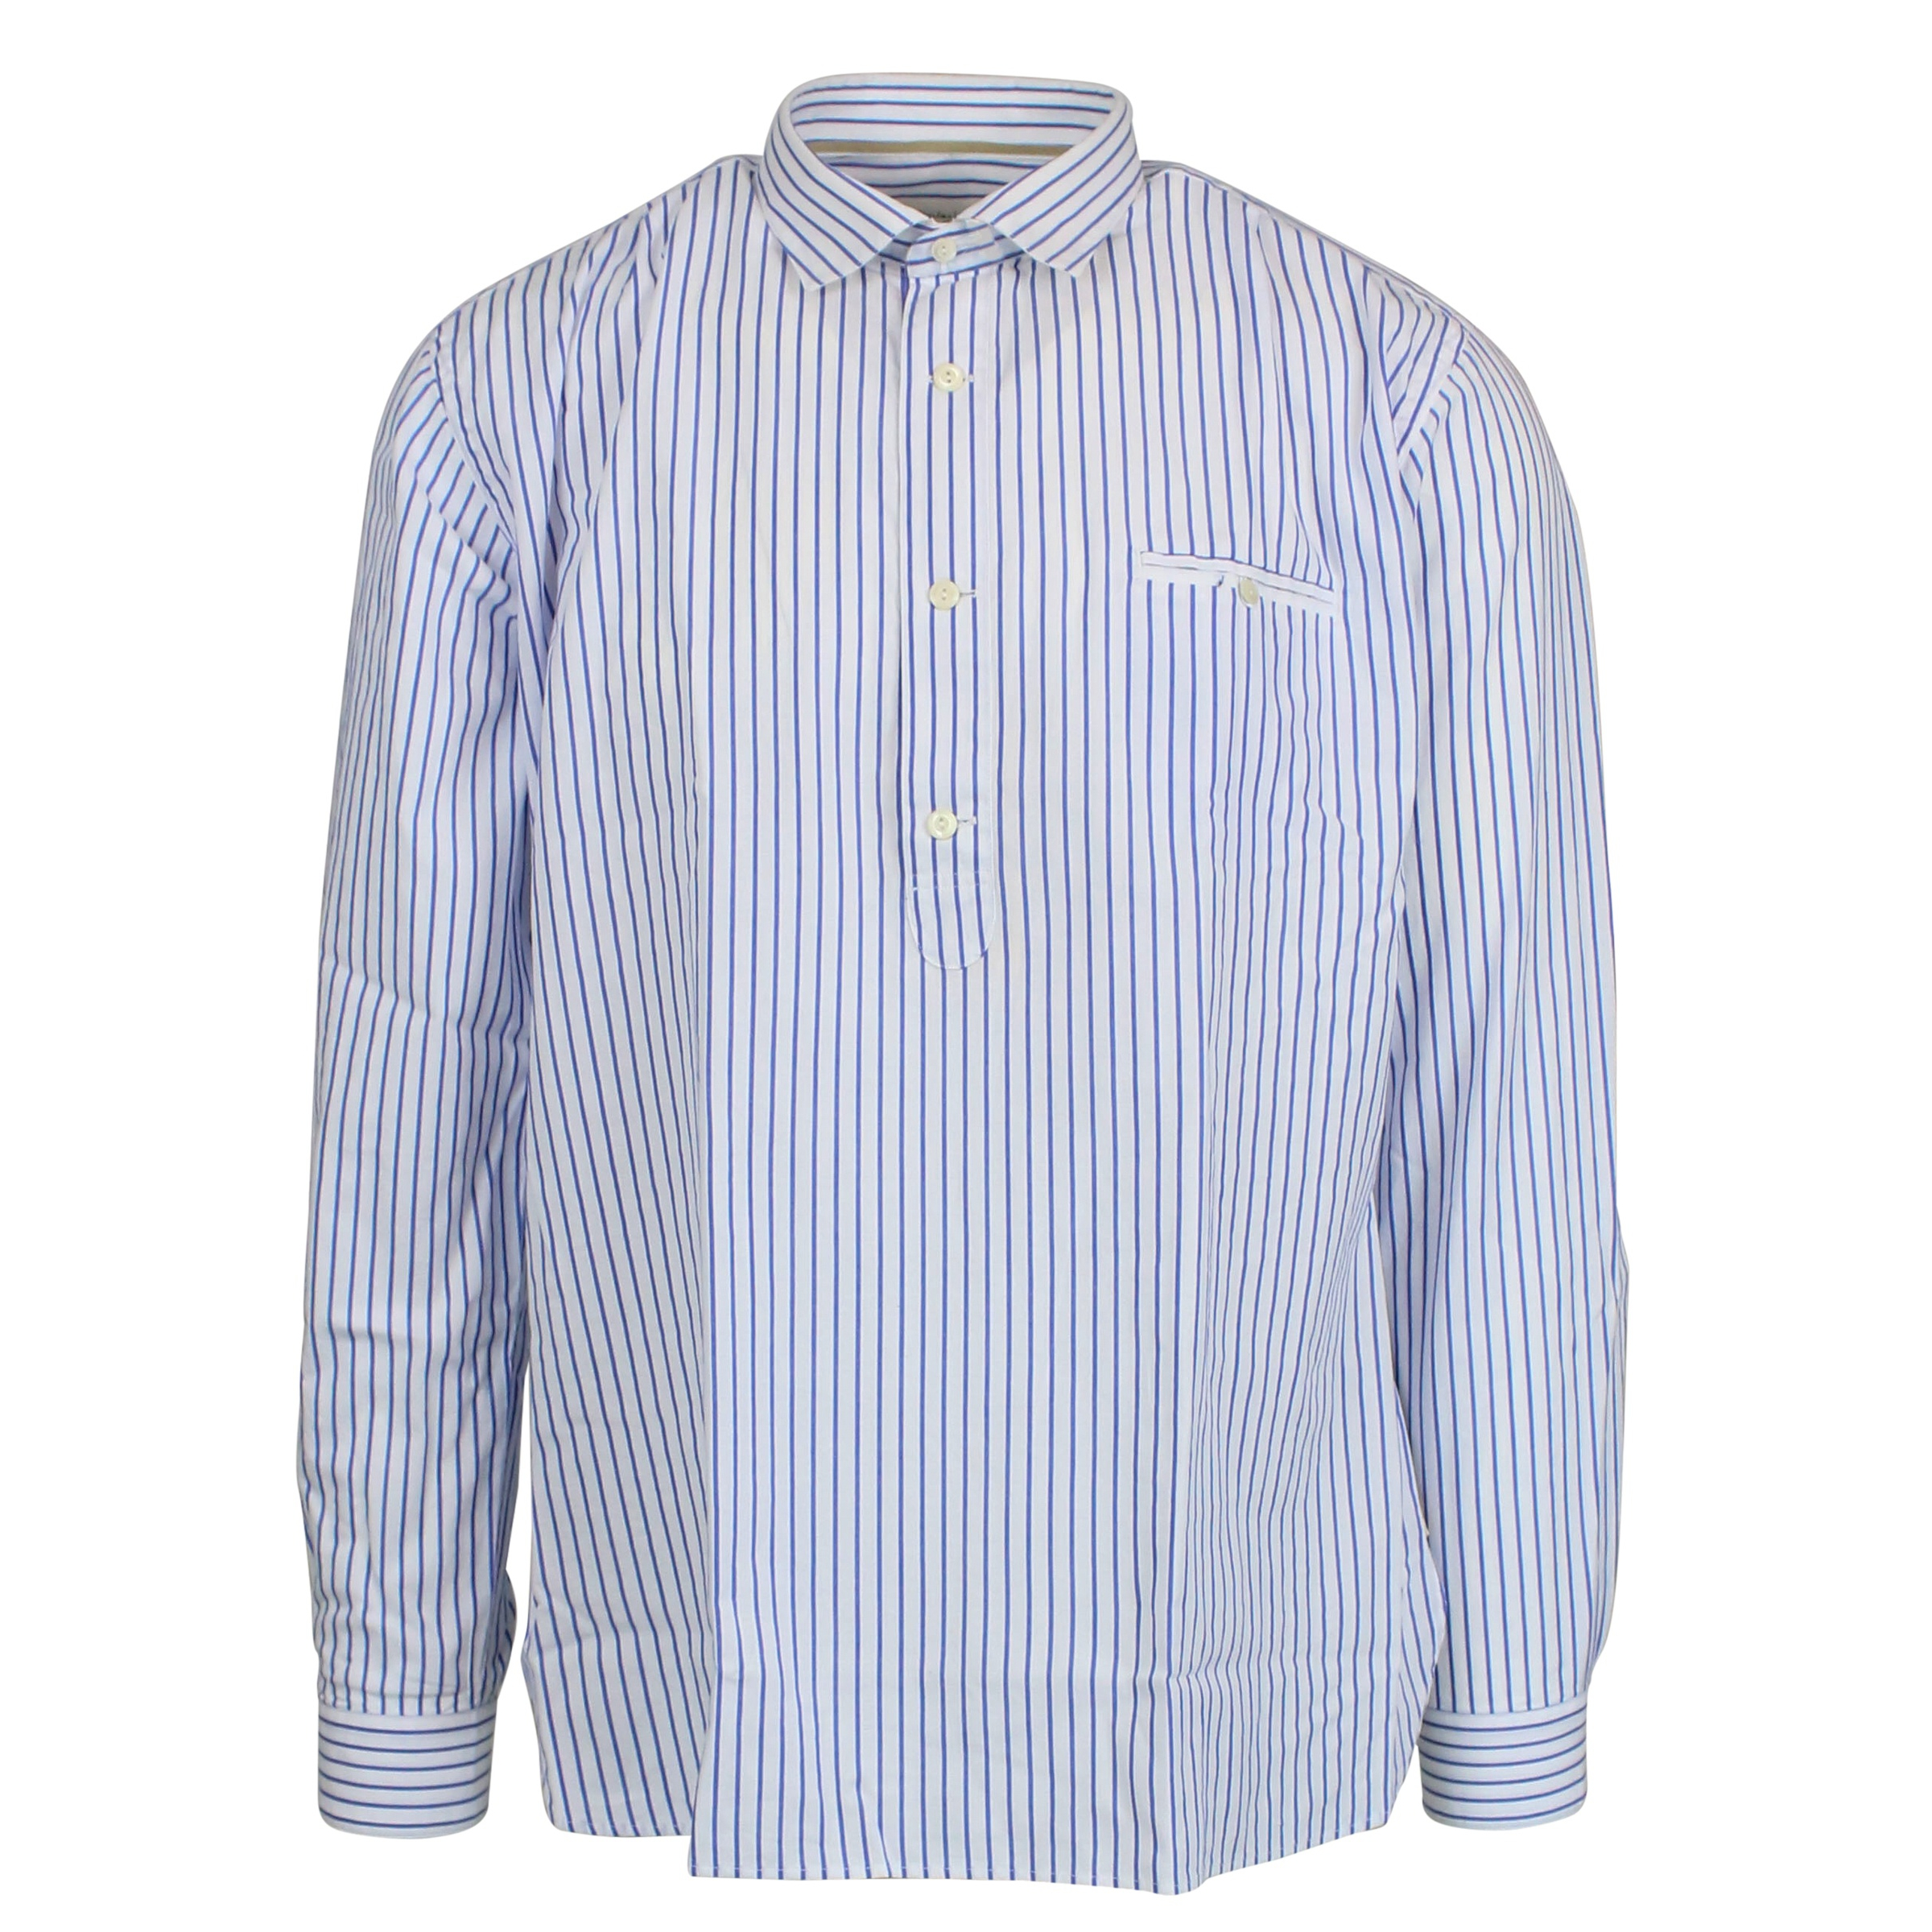 finest selection 0749f 484e8 Shirt with French collar